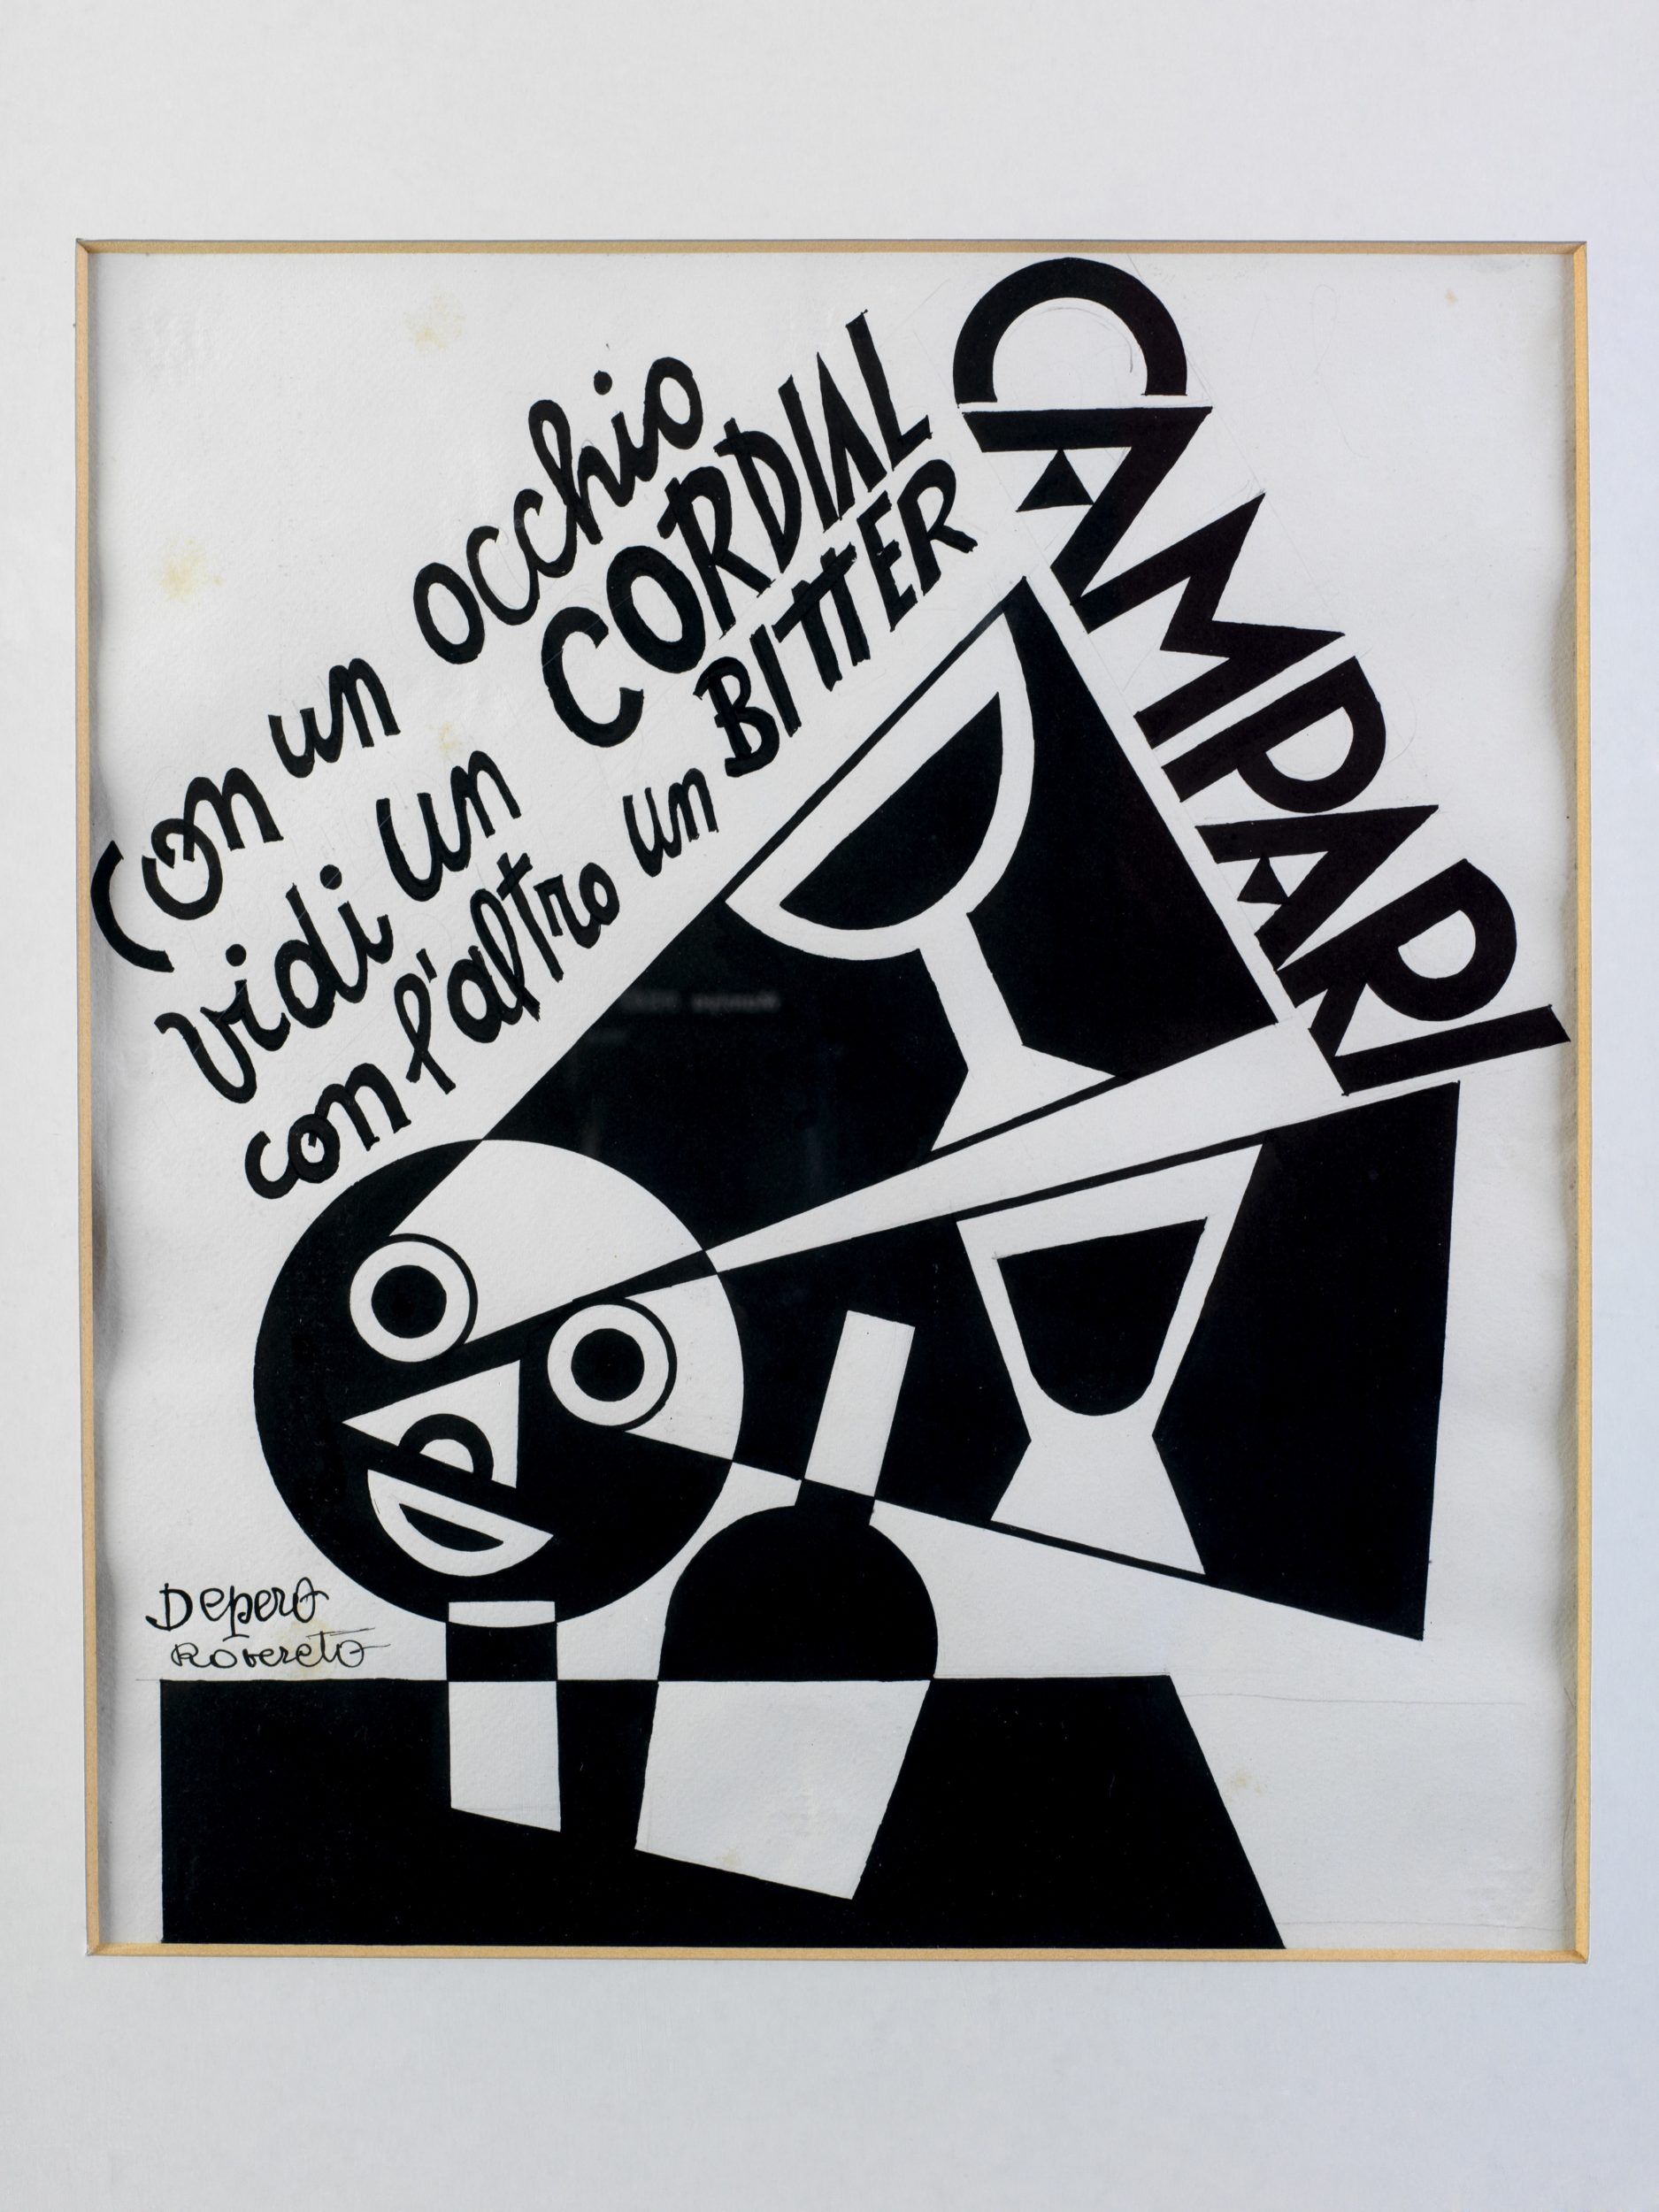 With one eye I saw a Cordial, with another a Bitter Campari, 1928, Fortunato Depero